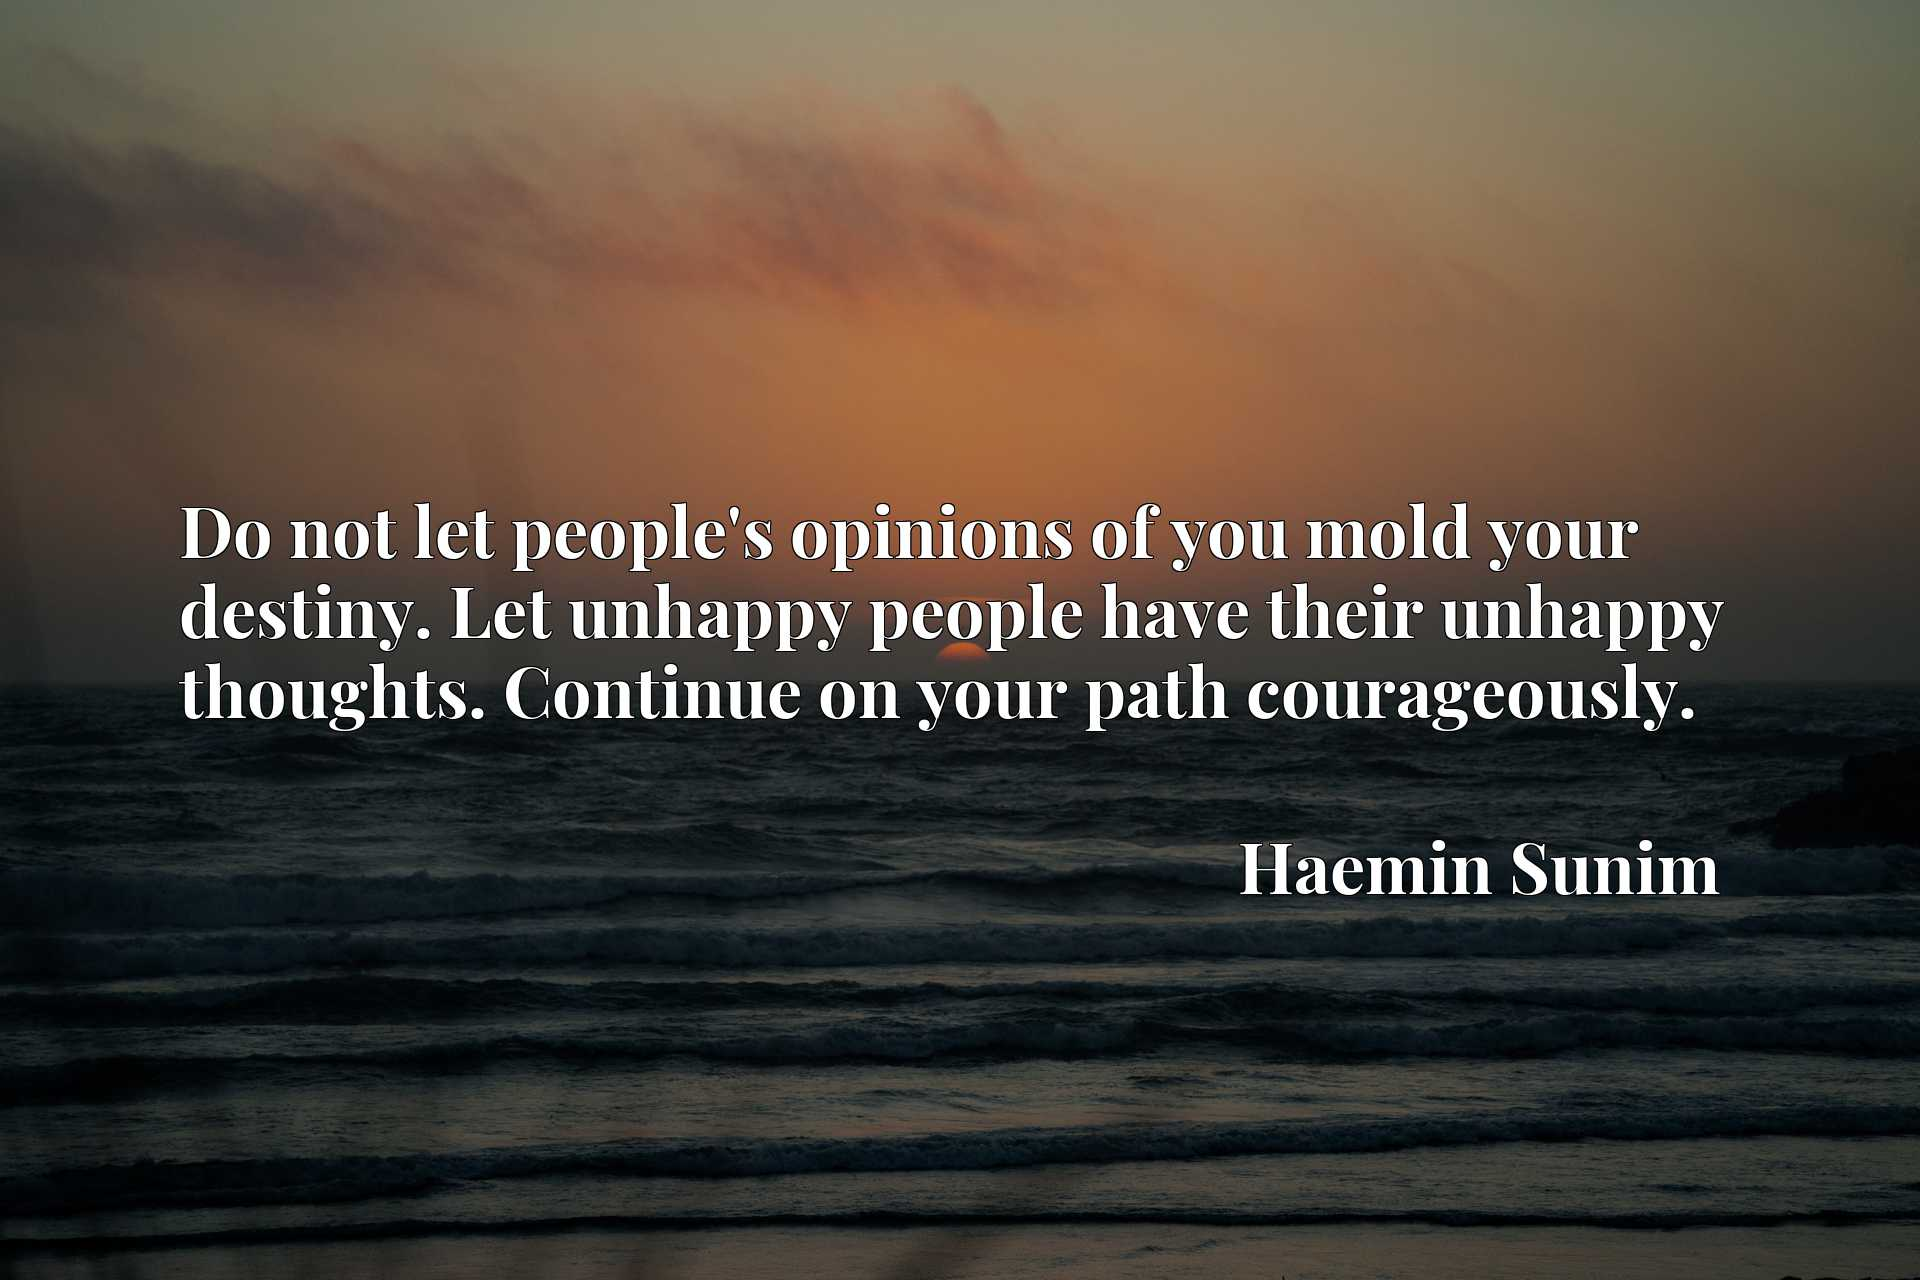 Do not let people's opinions of you mold your destiny. Let unhappy people have their unhappy thoughts. Continue on your path courageously.